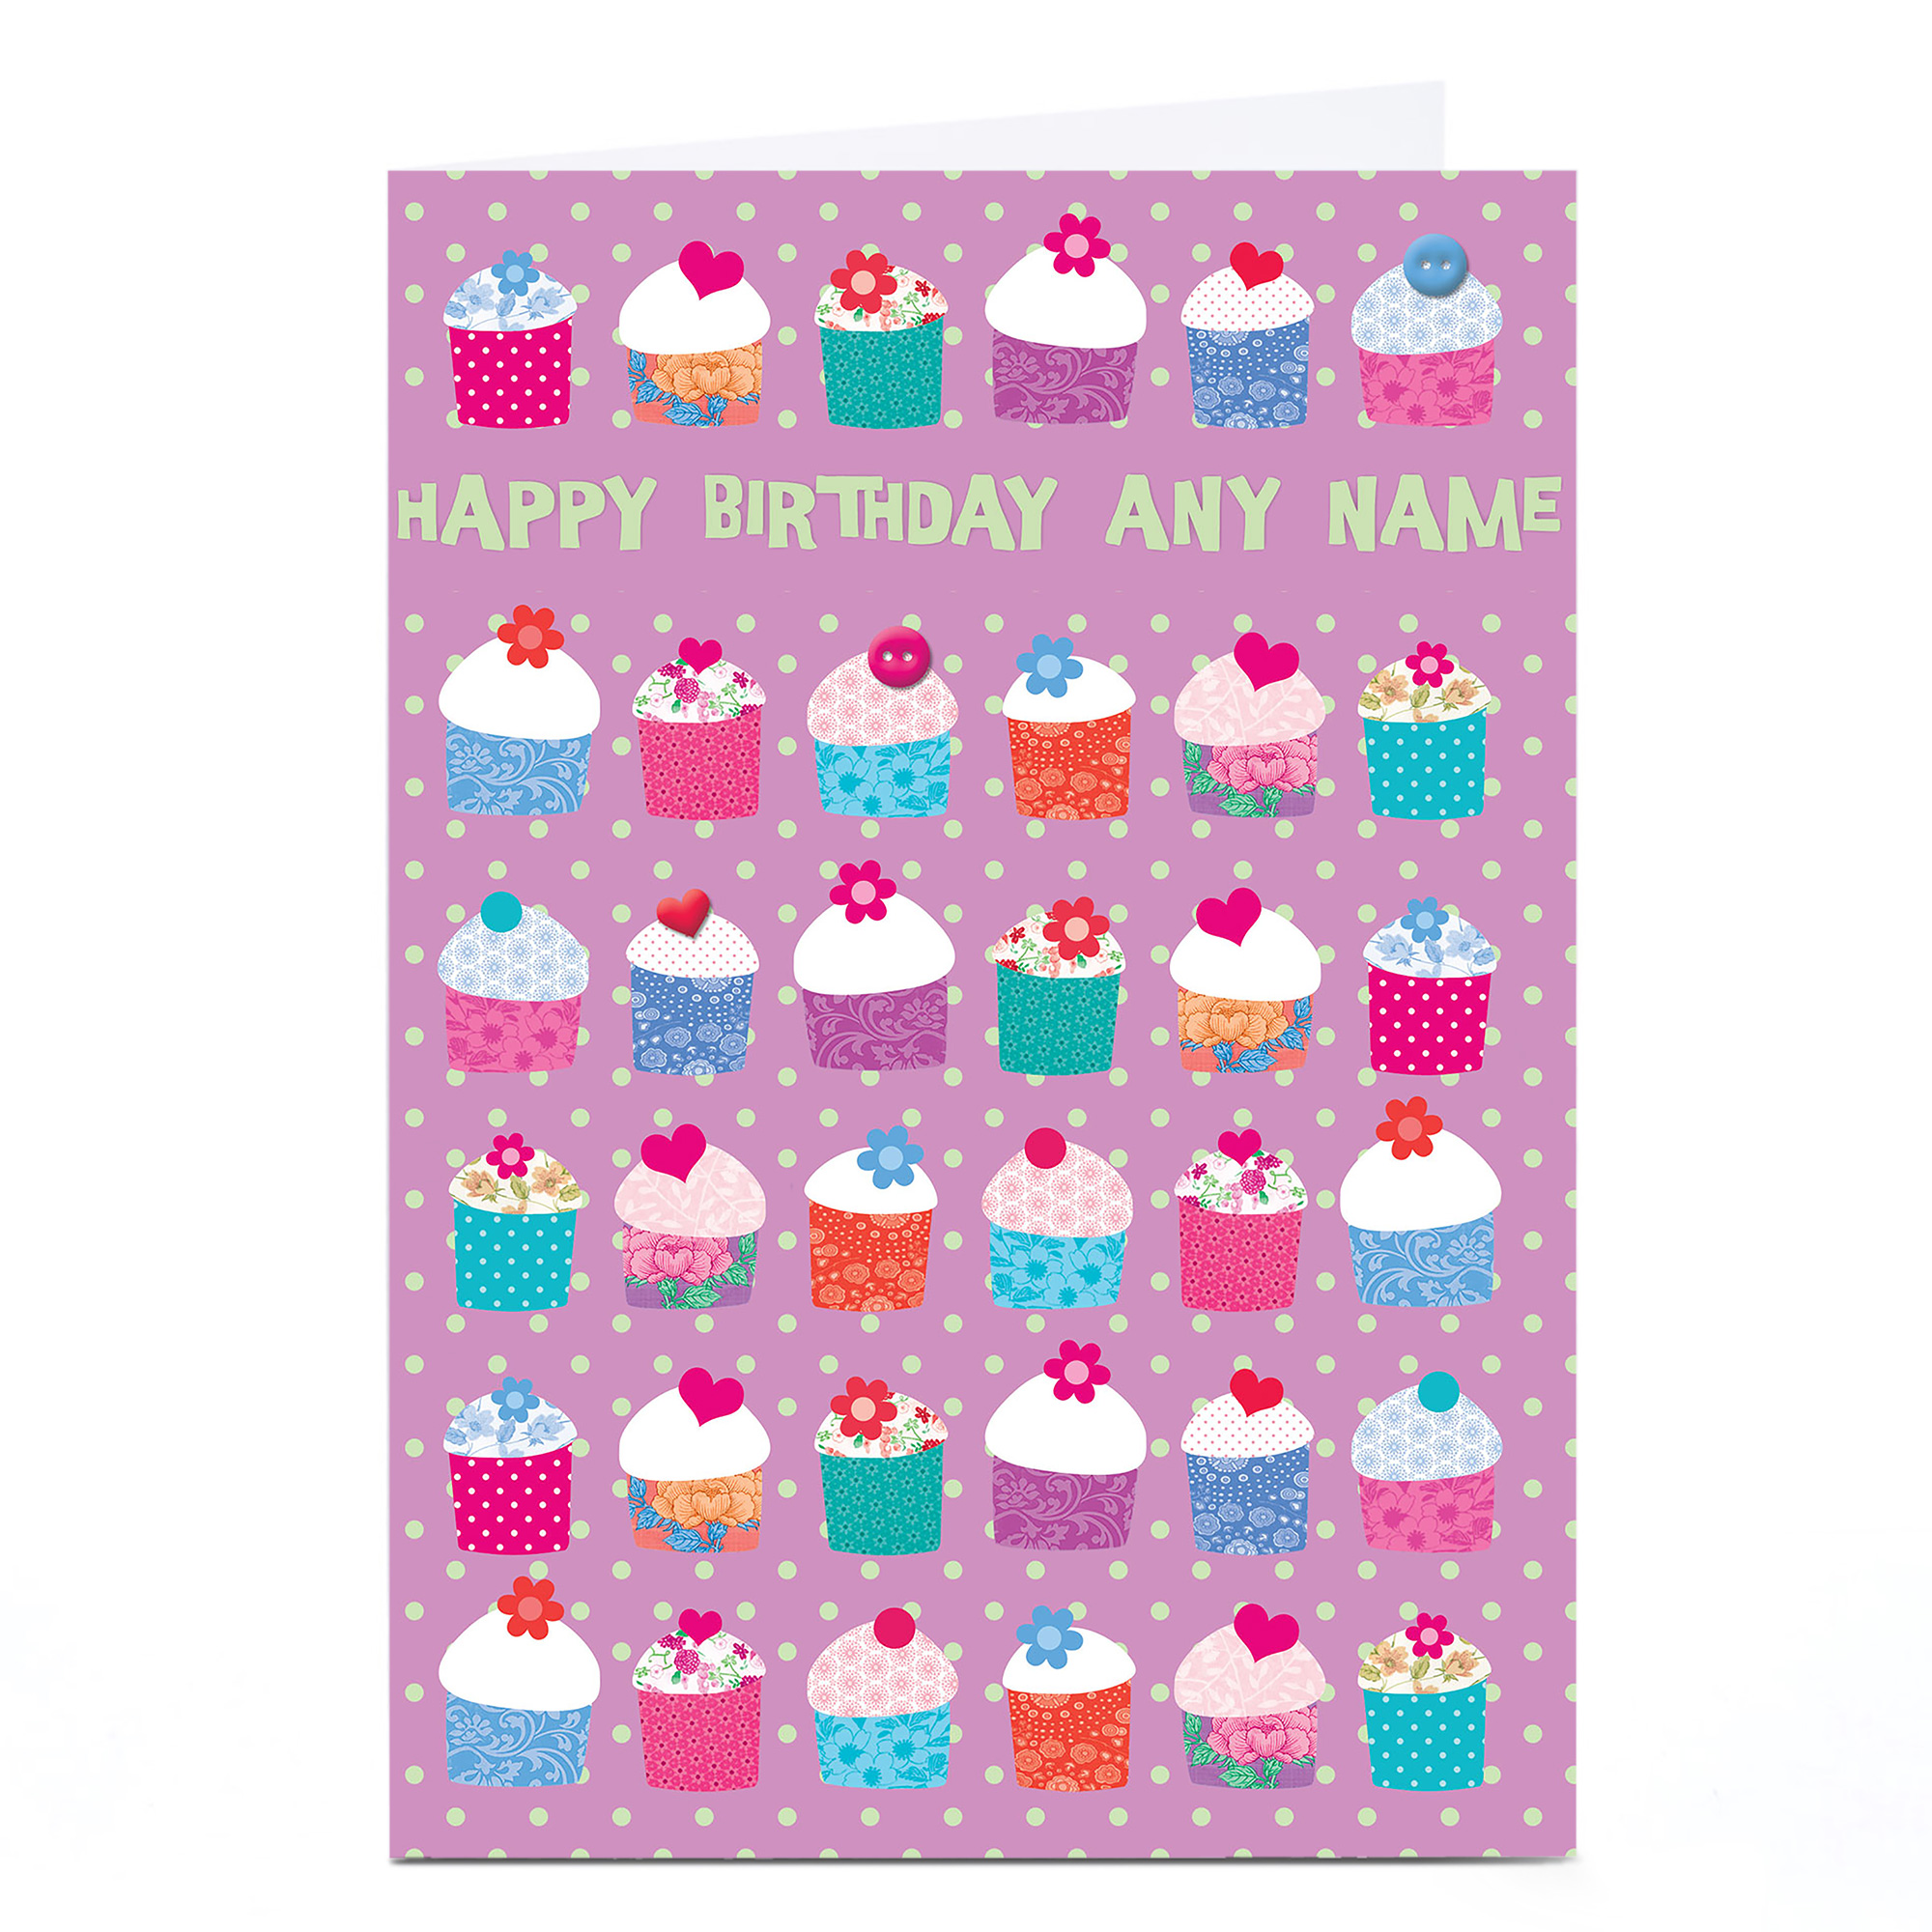 Personalised Birthday Card - Polka Dot Cupcakes